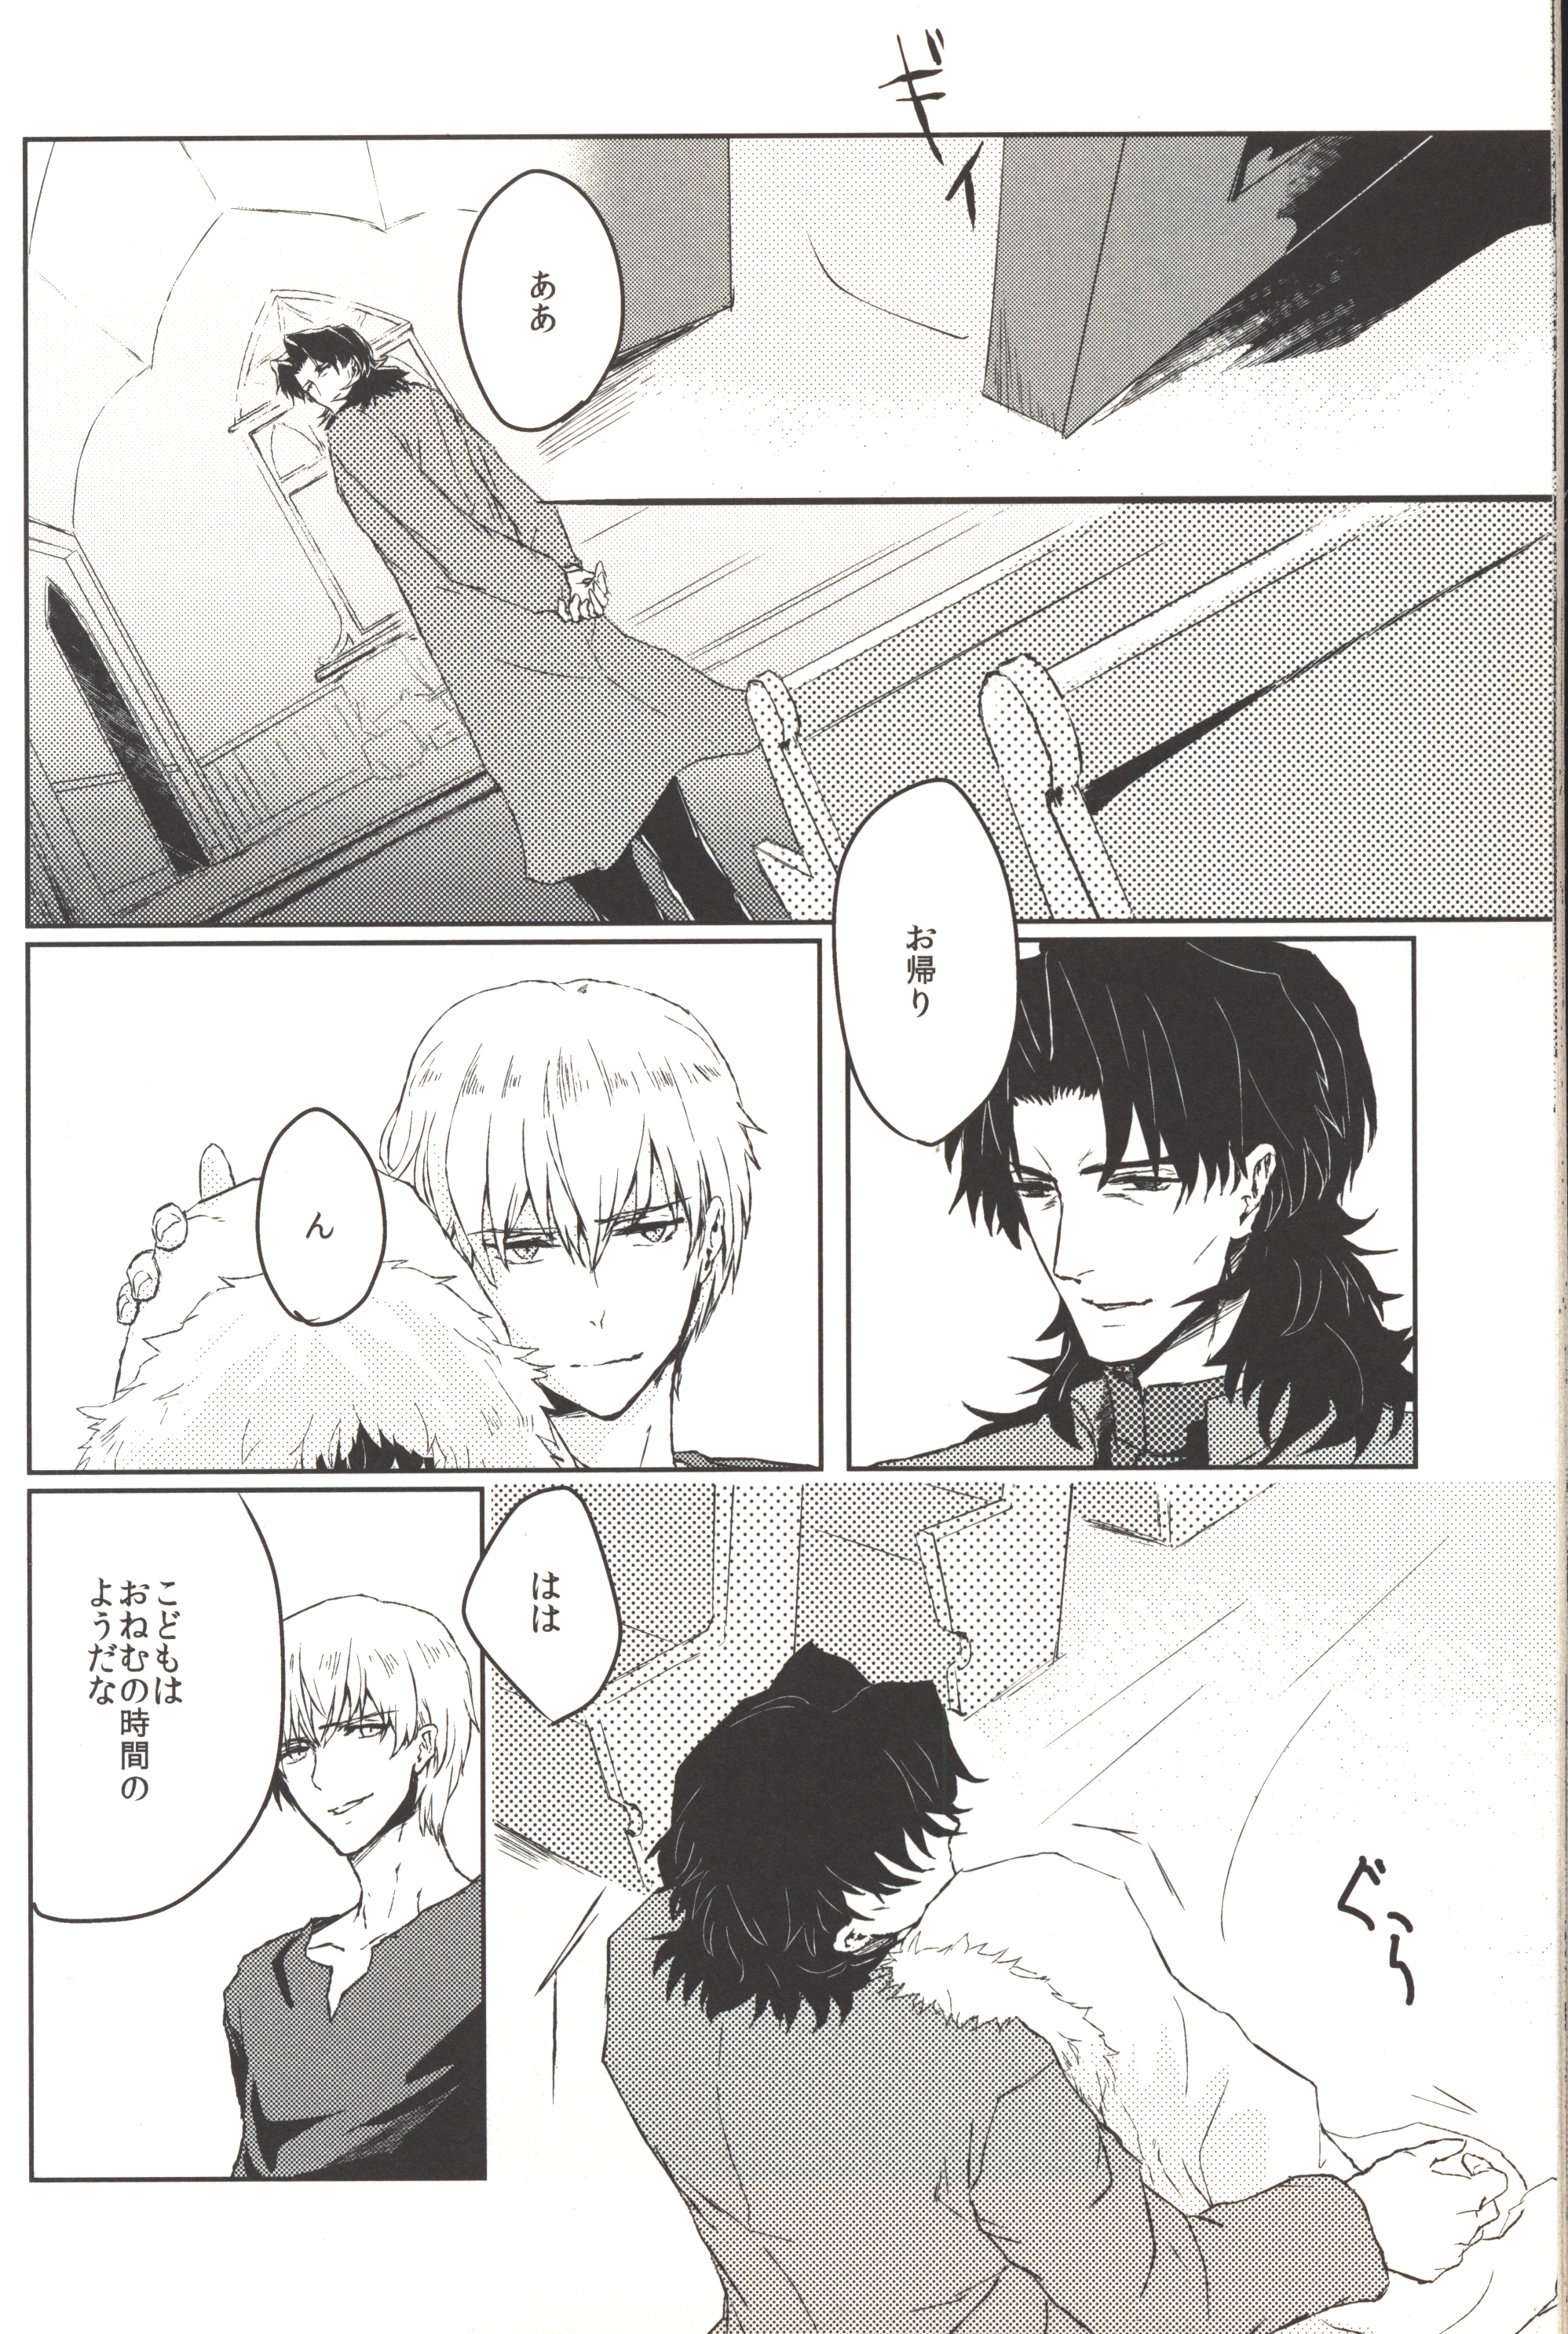 Doujinshi - Fate/stay night / Shirou & Kirei & Gilgamesh (Complex) / 壱辺倒